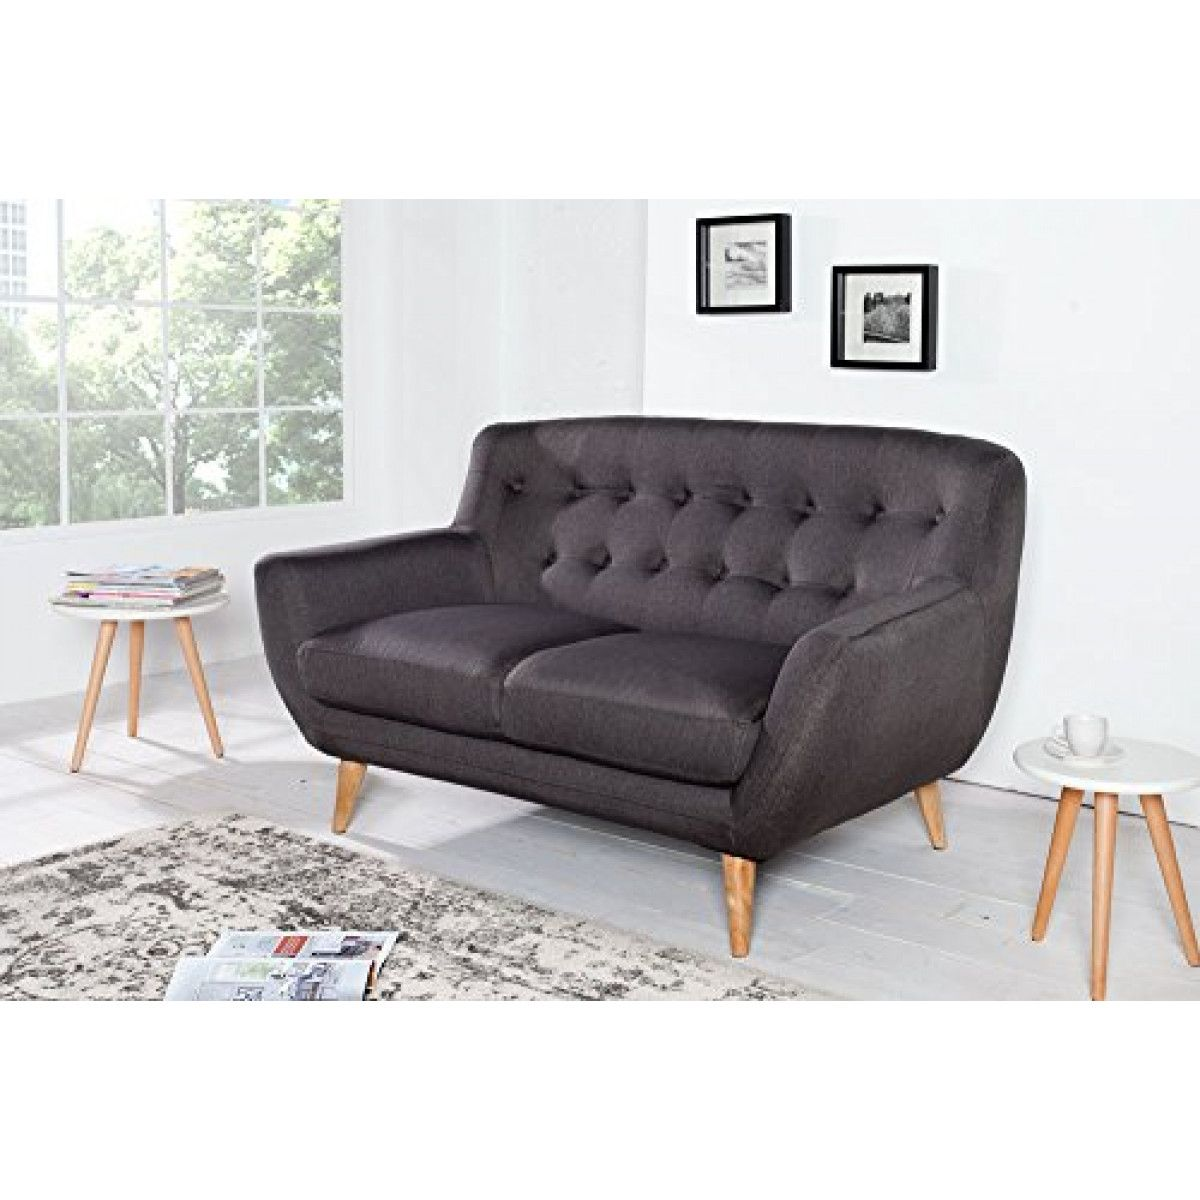 Invicta Interior 36548 Sofa Scandinavia Ii 2er Anthrazit